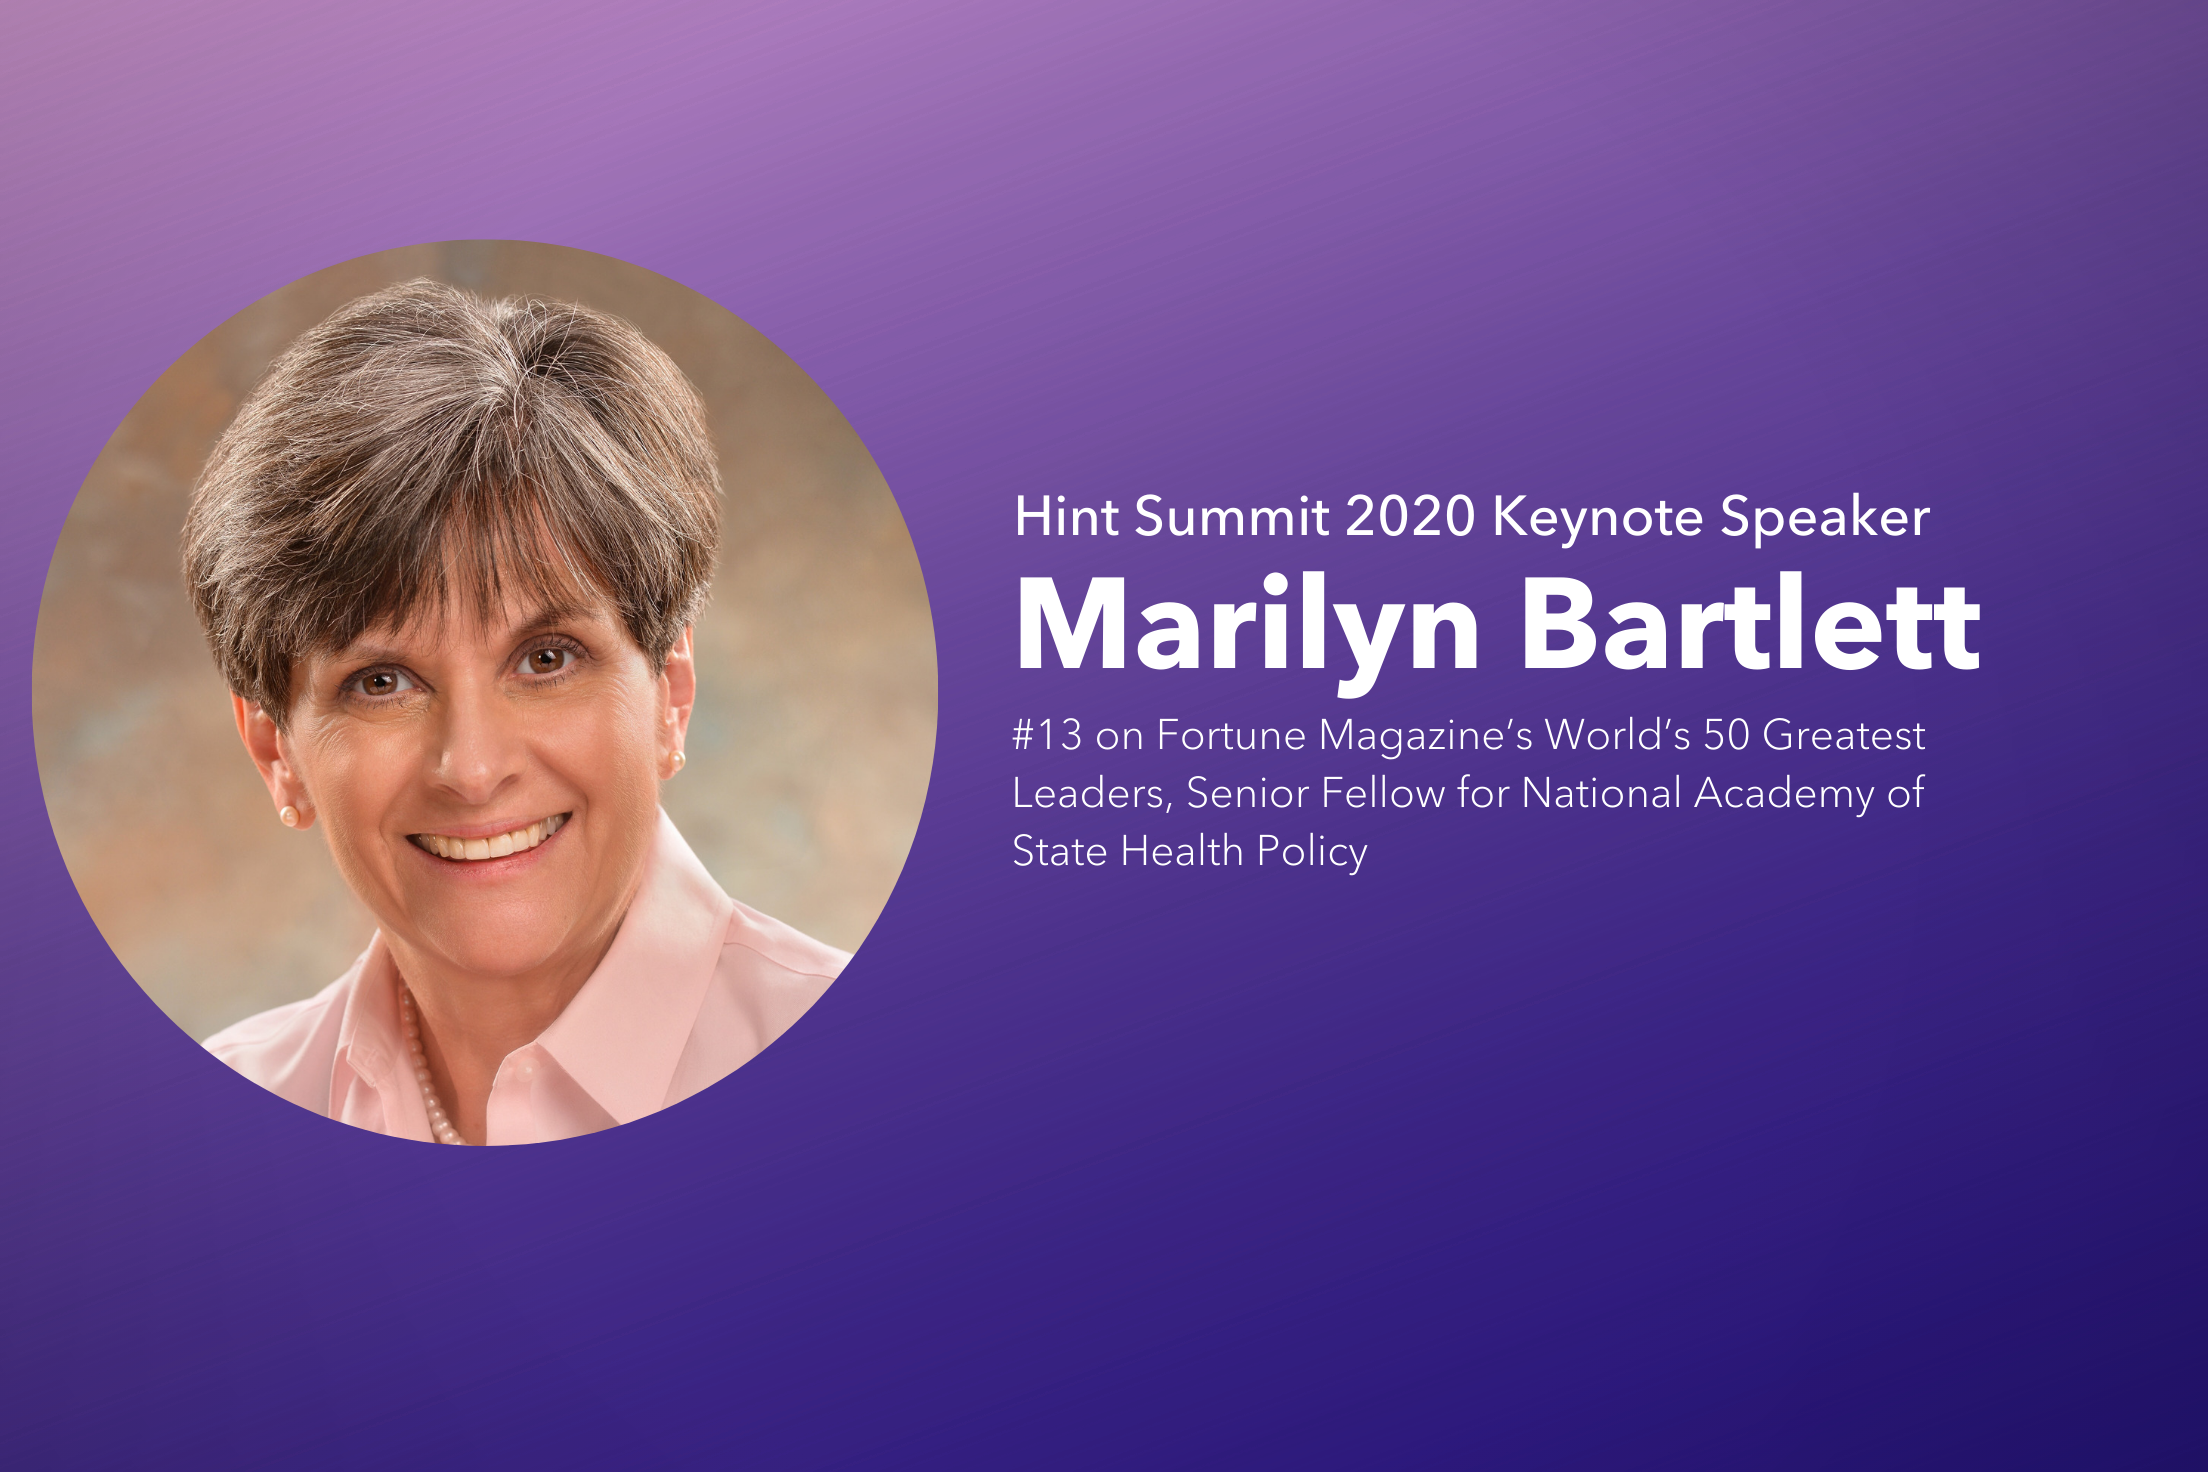 Join Marilyn Bartlett, World Class Leader & Healthcare Expert, at Hint Summit 2020